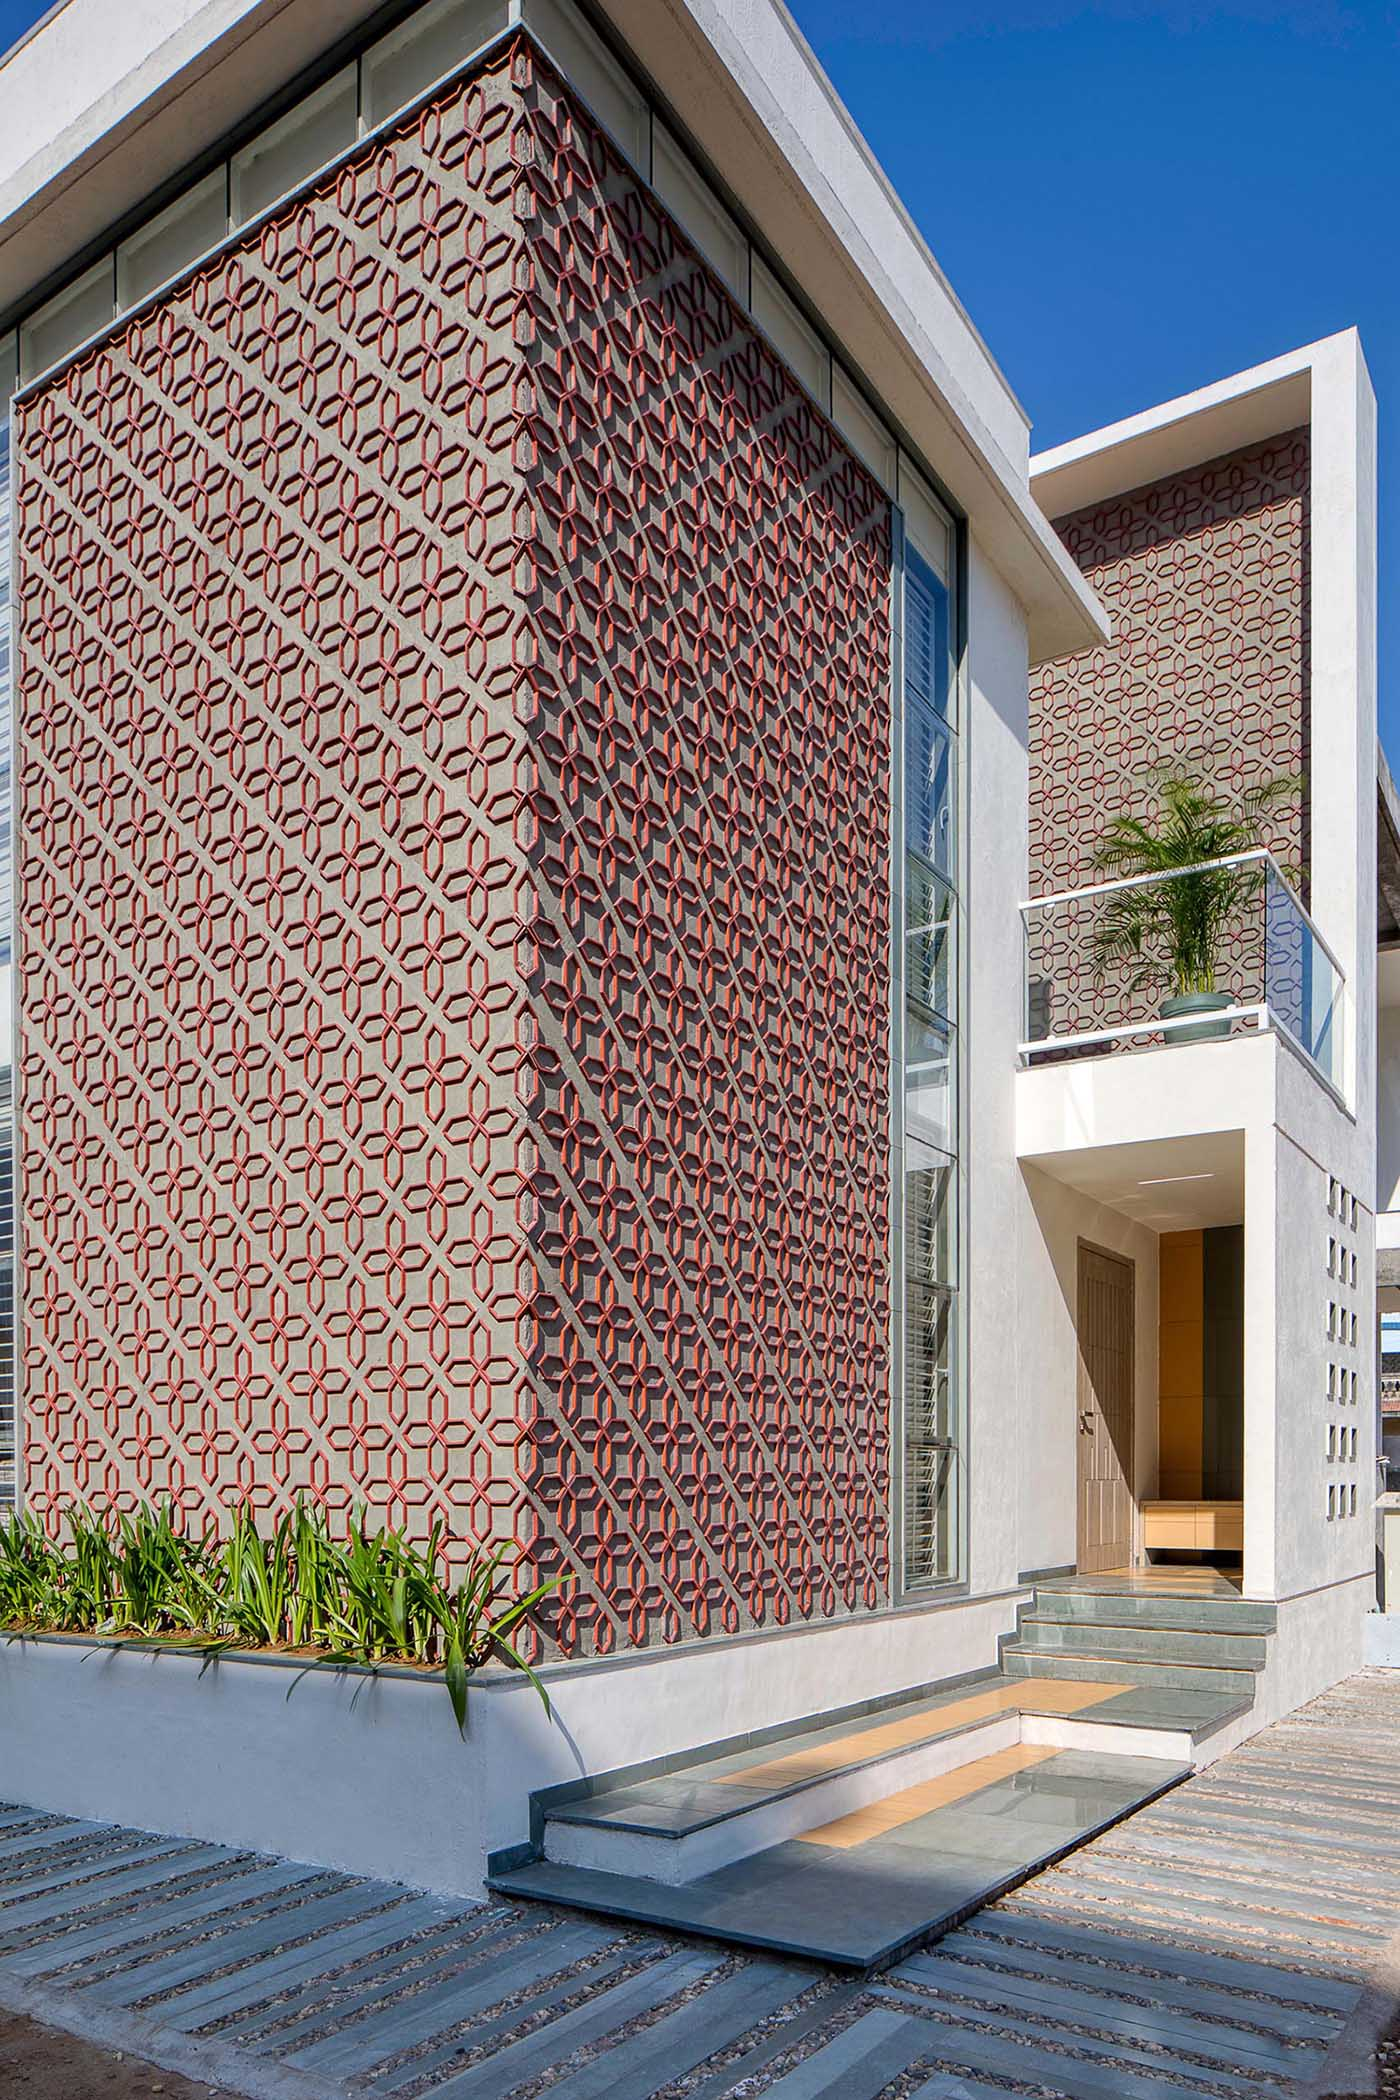 A modern house design with a unique patterned accent wall on its facade.